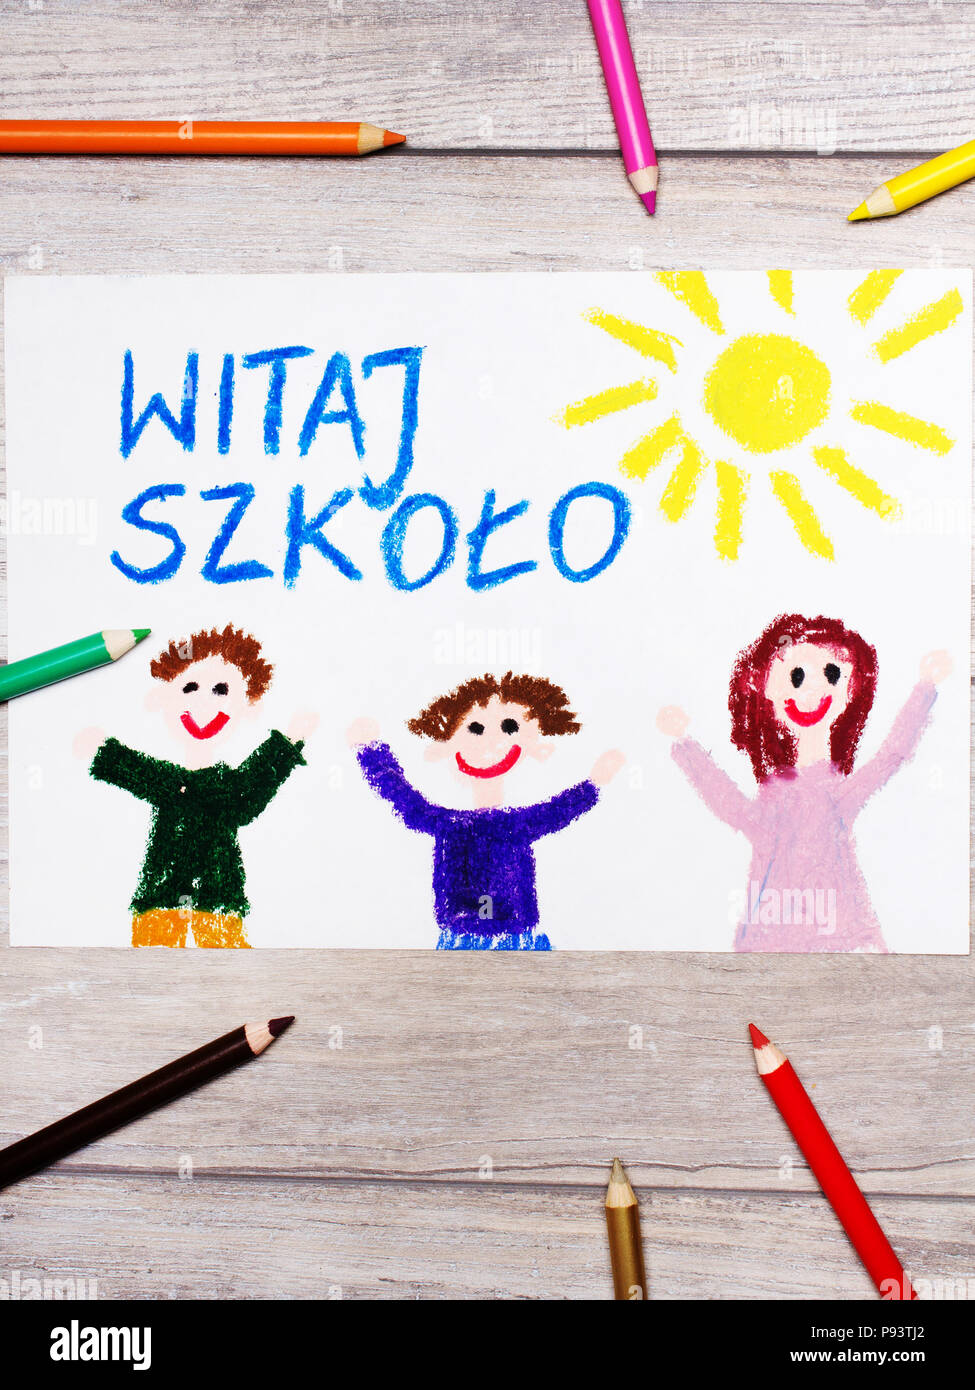 Welcome Back Kids Stock Photos & Welcome Back Kids Stock Images - Alamy